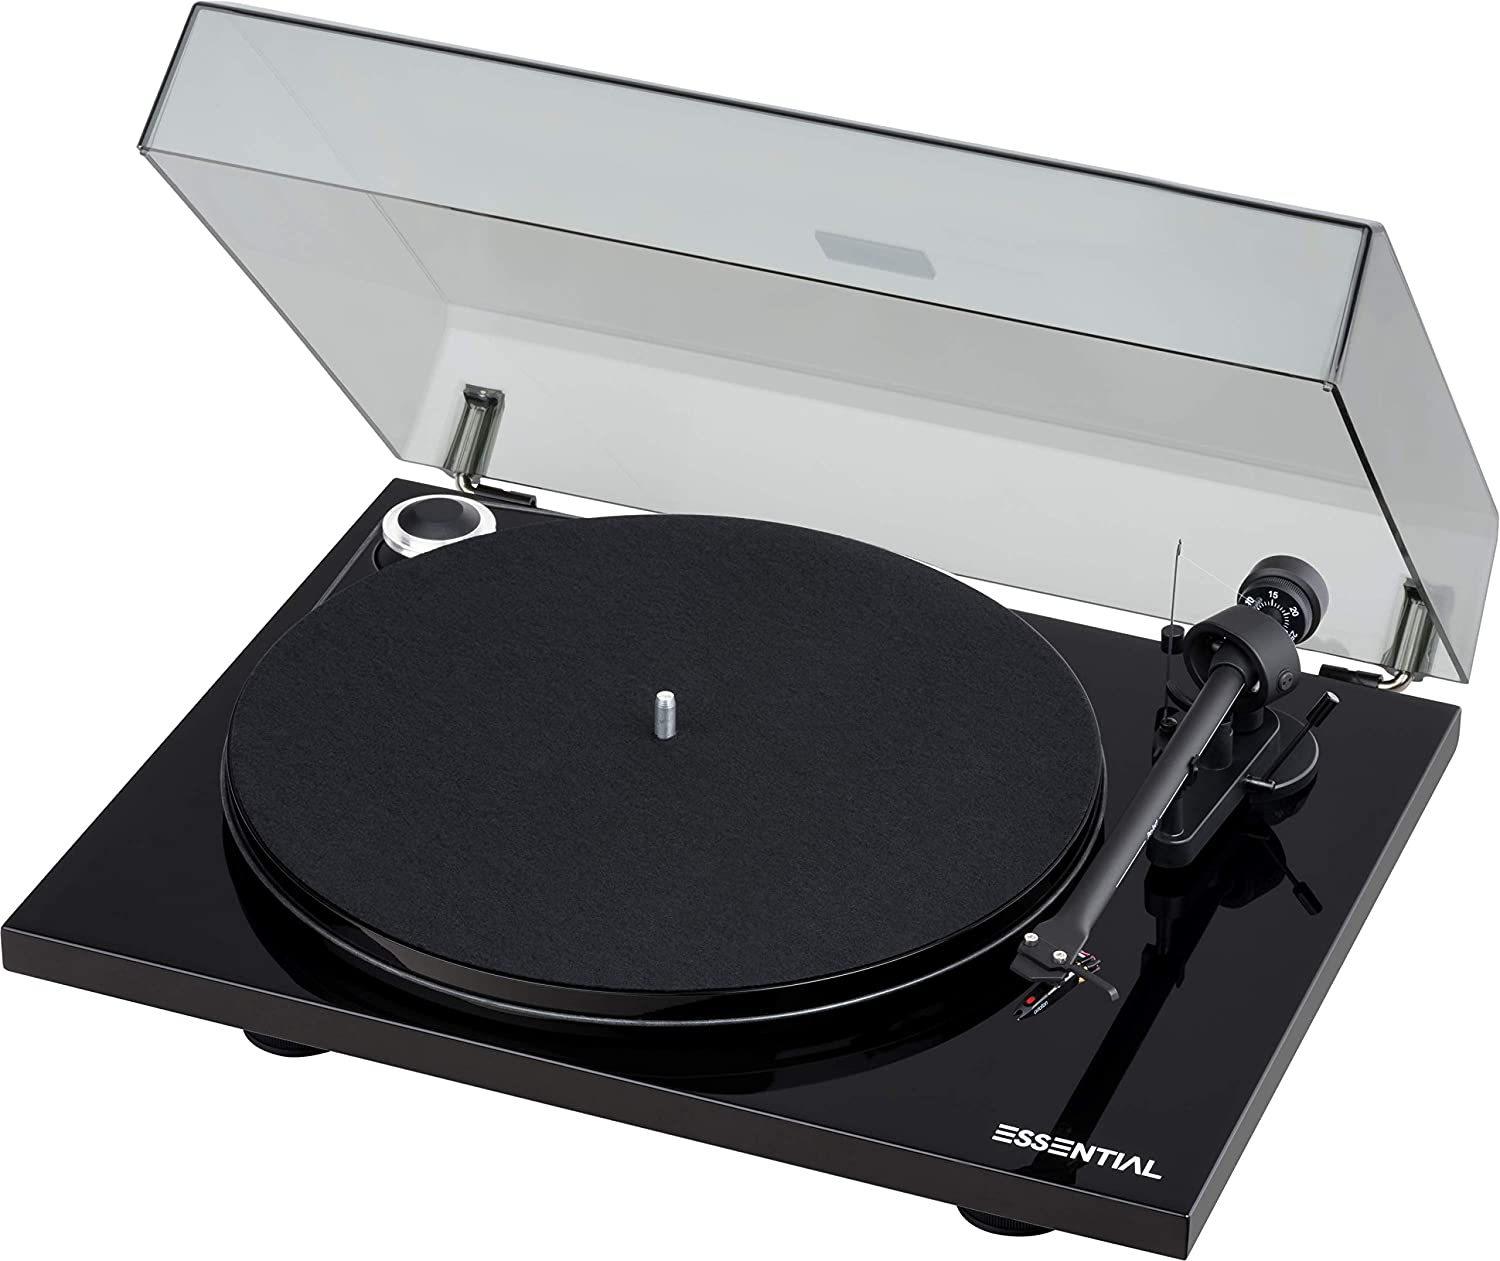 all models Turntable. New Project 1 x Drive Belt for the Pro-Ject Essential